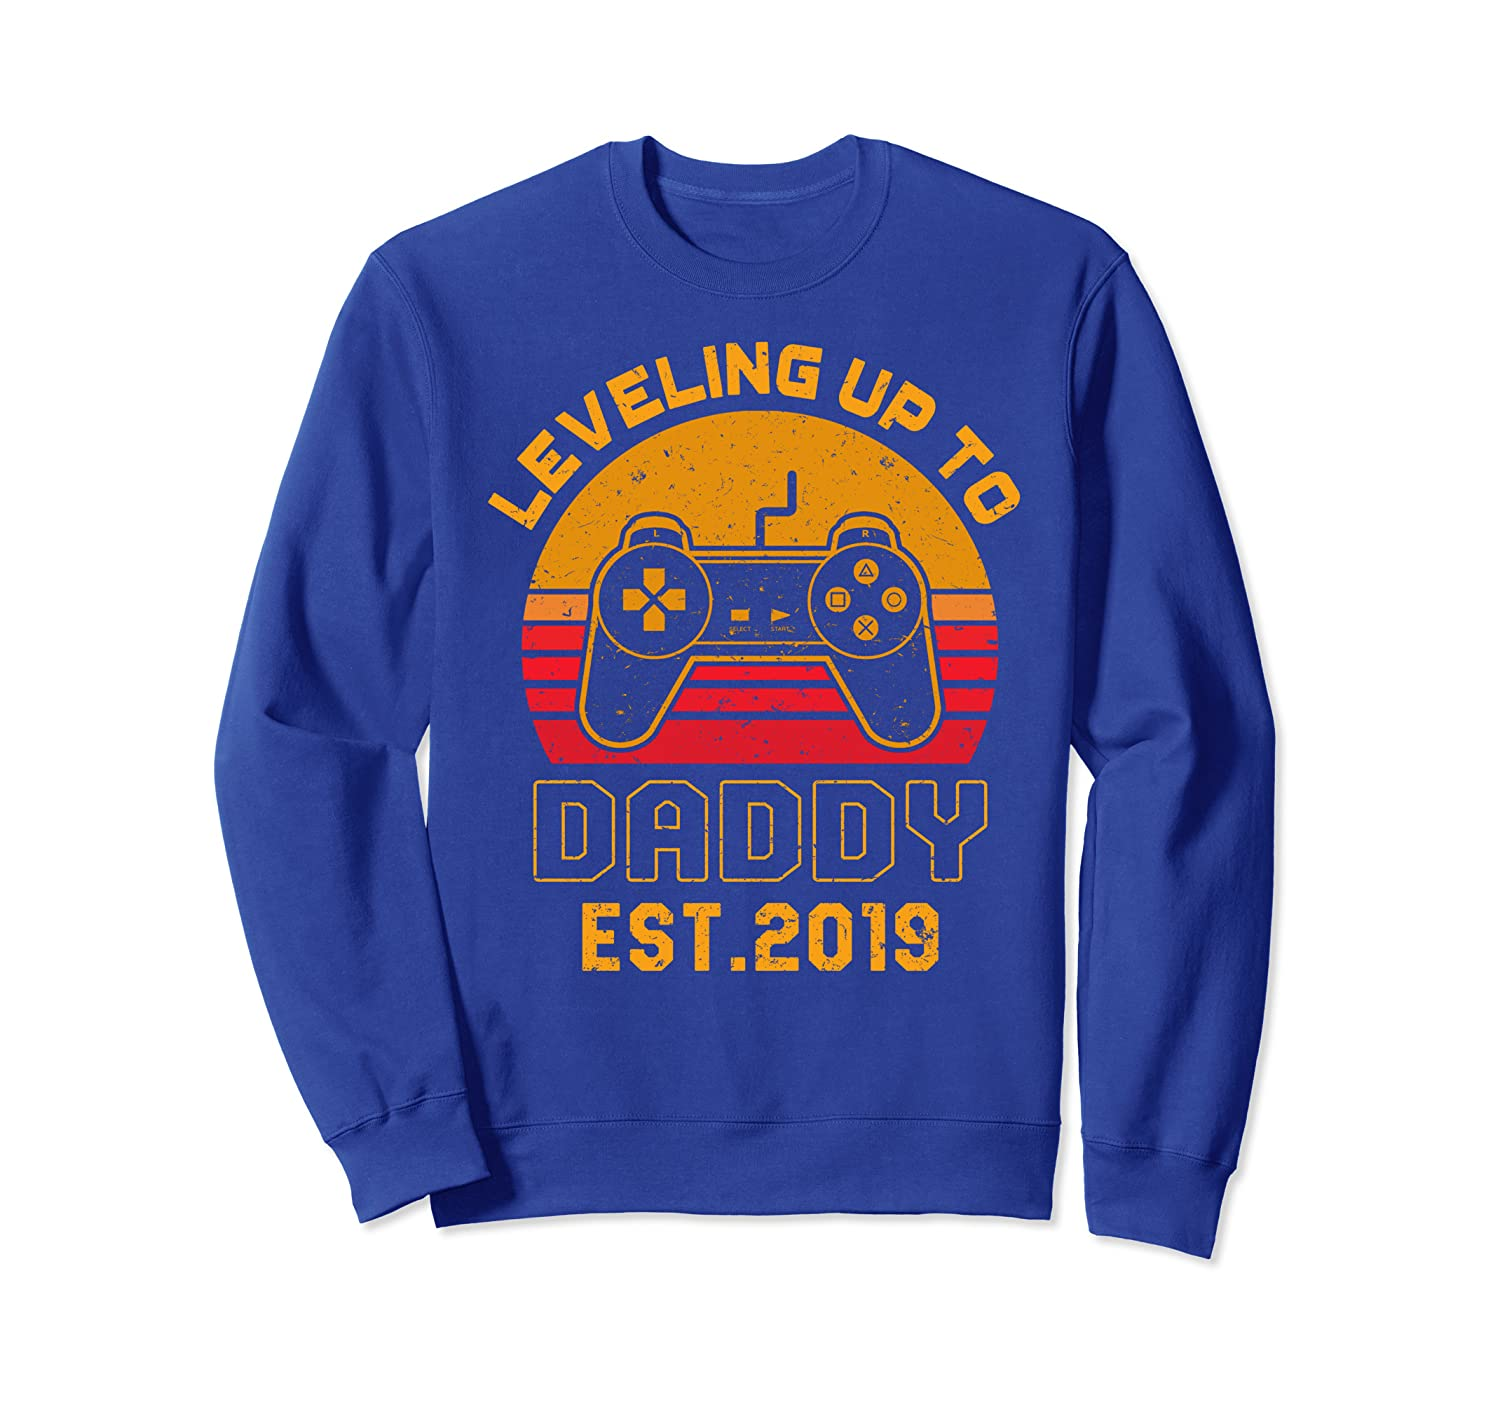 Promoted To Daddy Shirt New Father Gamer Dad Gift Sweatshirt-TH